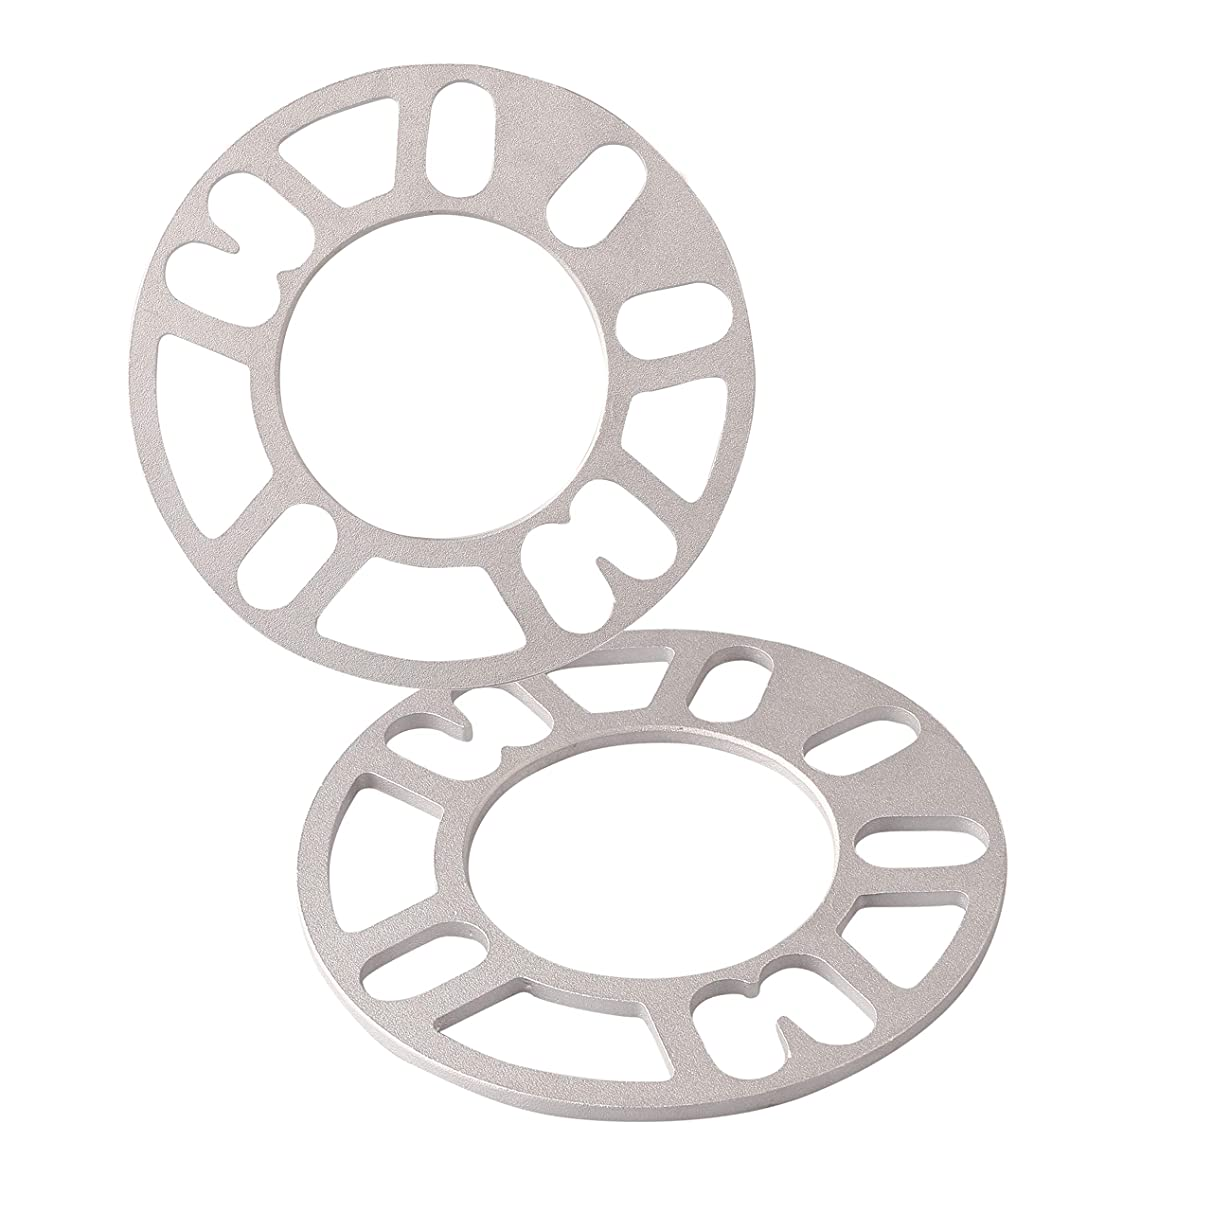 5mm Thickness Wheel Spacers for 98-120 Rims Wheel, Alloy Aluminum Unverisal Adapters for 4 Lug or 5 Lug Wheels Provide Desired Offset (Pack of 2)